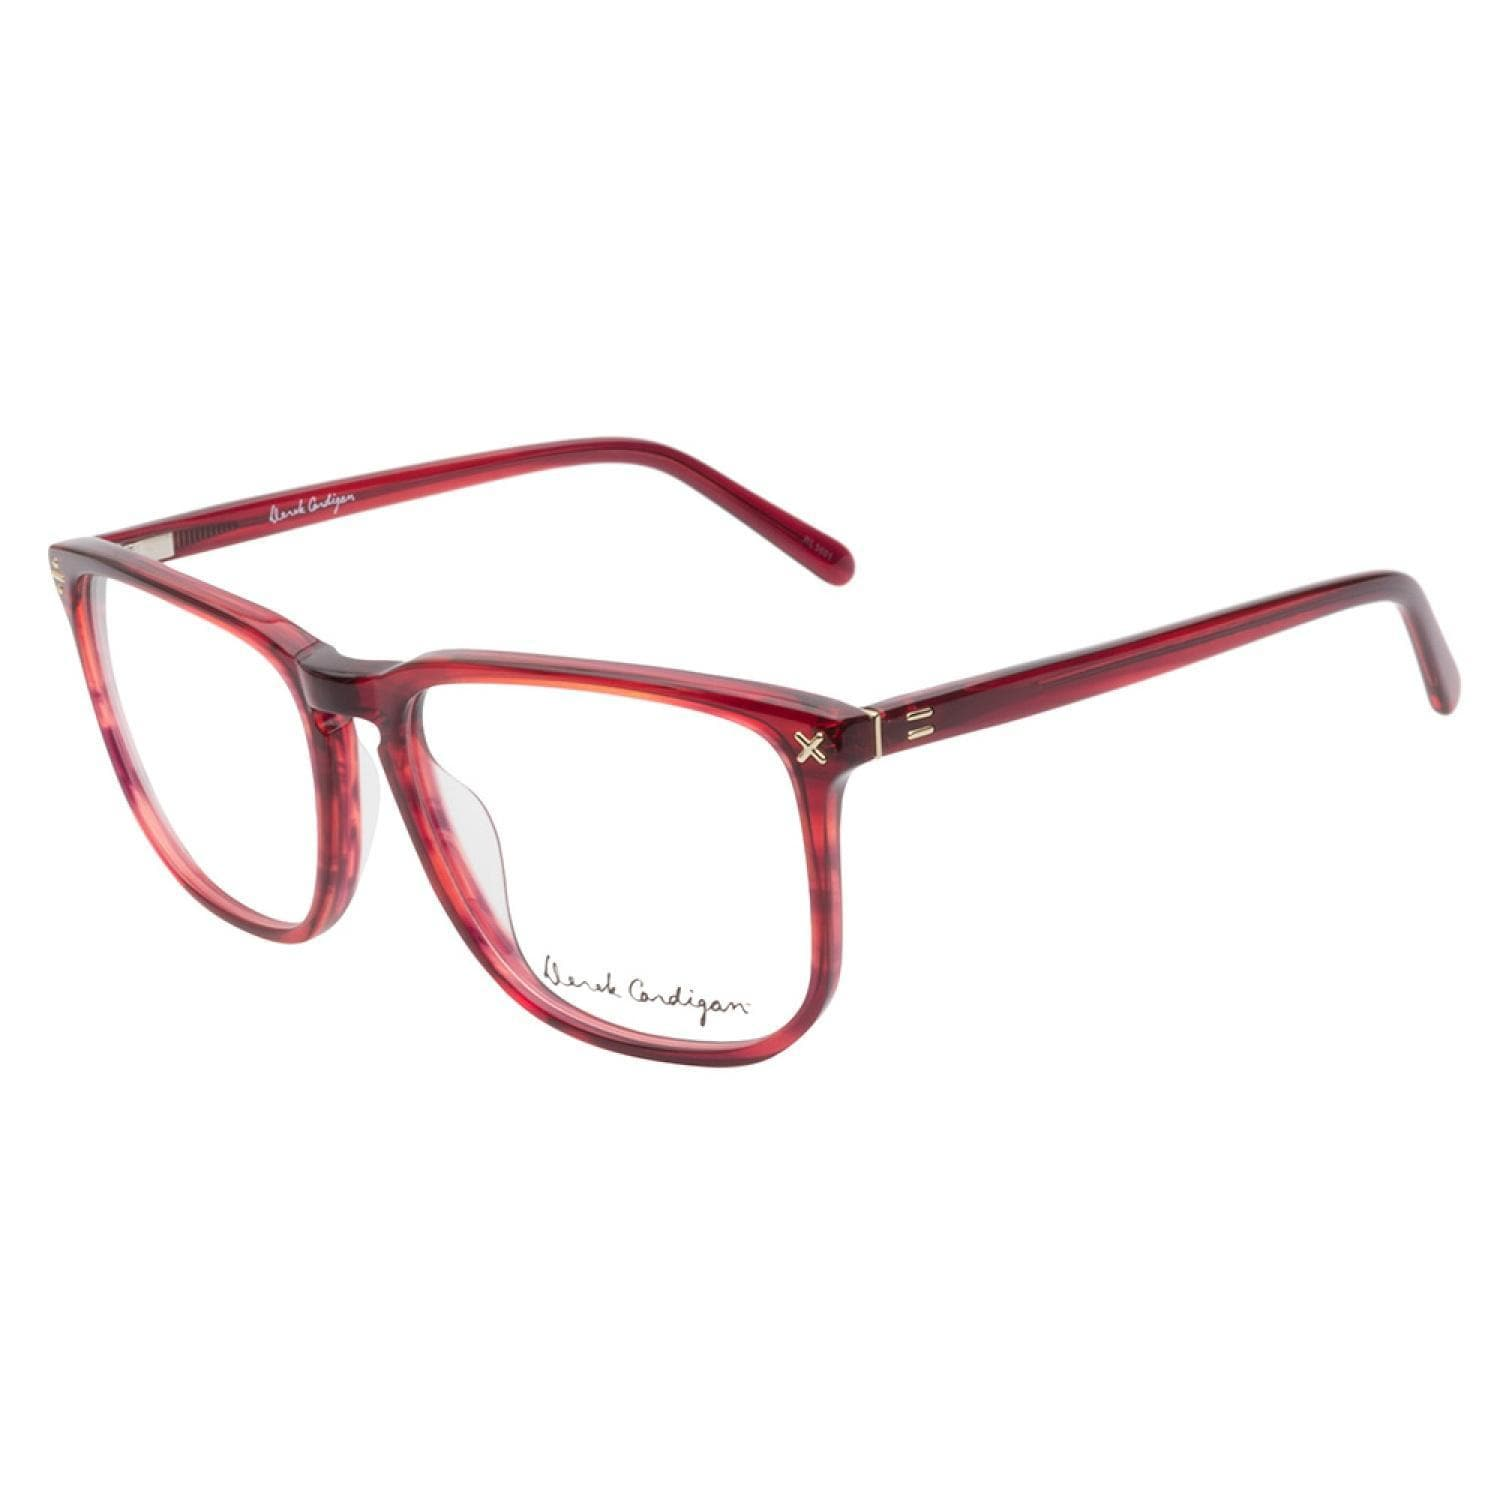 1fefbc41872 Shop Derek Cardigan 7032 Crimson Prescription Eyeglasses - Free Shipping  Today - Overstock.com - 9802071